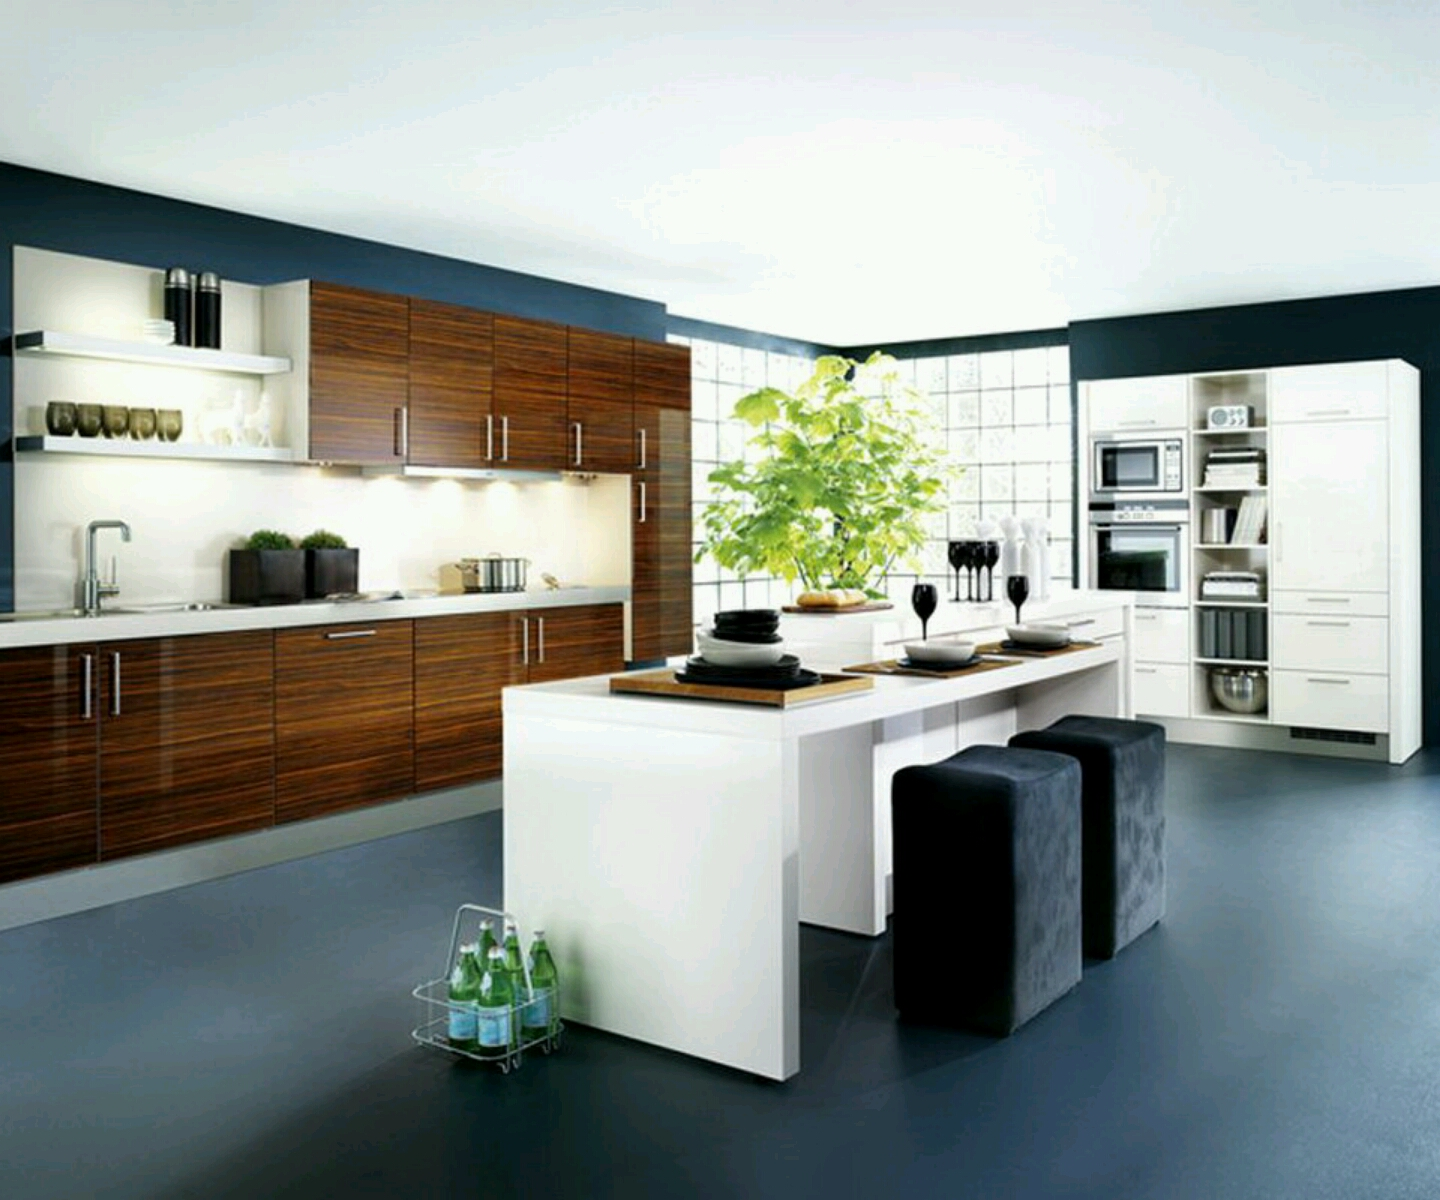 New home designs latest kitchen cabinets designs modern for Kitchen furniture layout